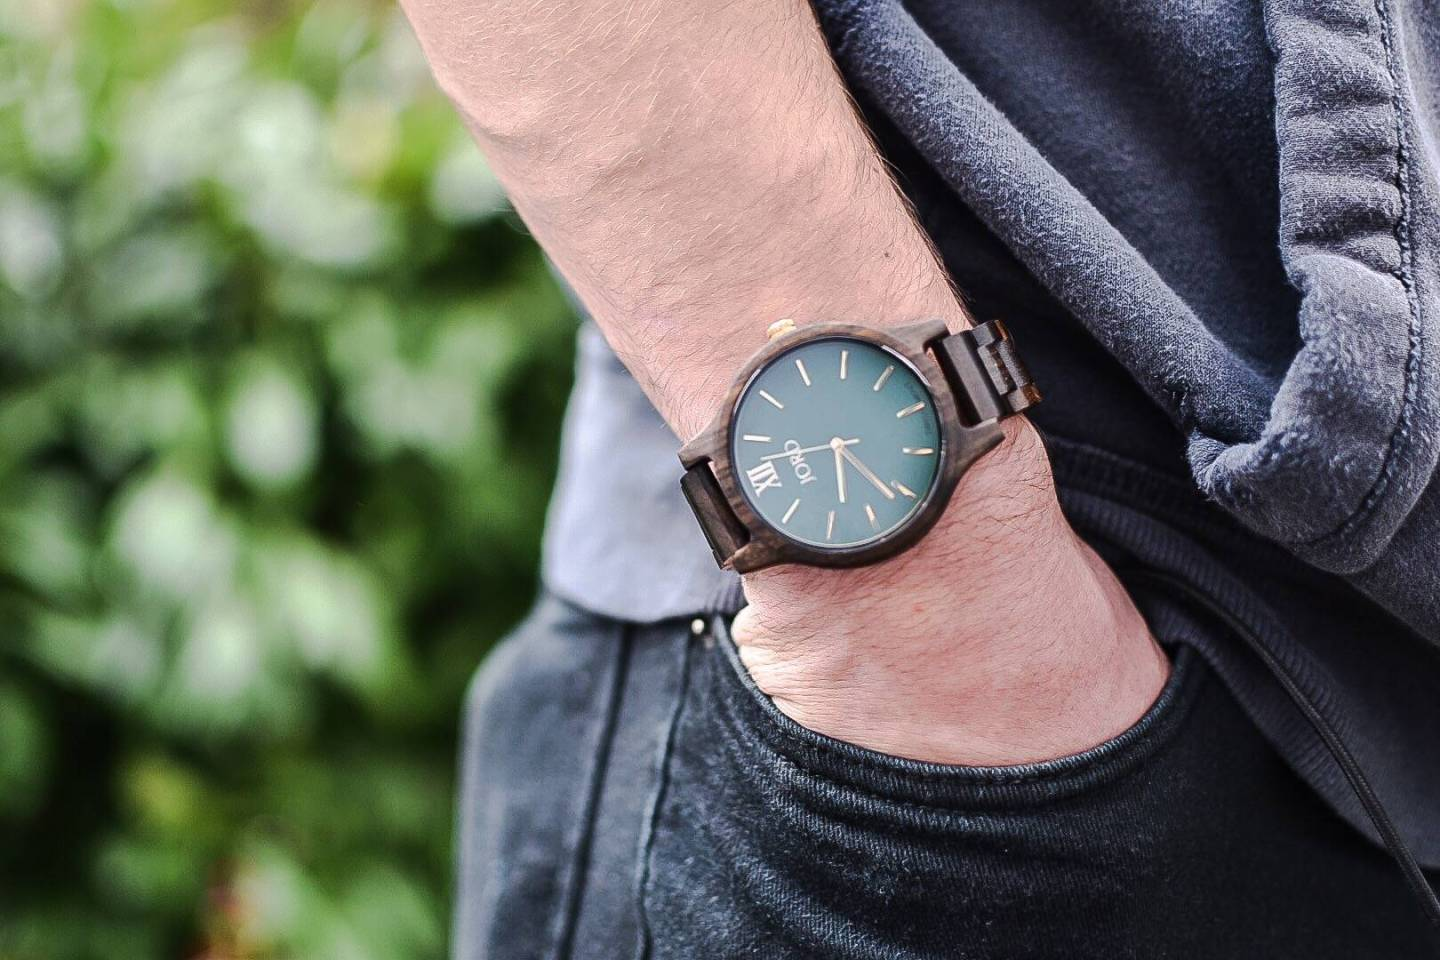 I think this Jord wood watch will be the perfect present for my teenage son